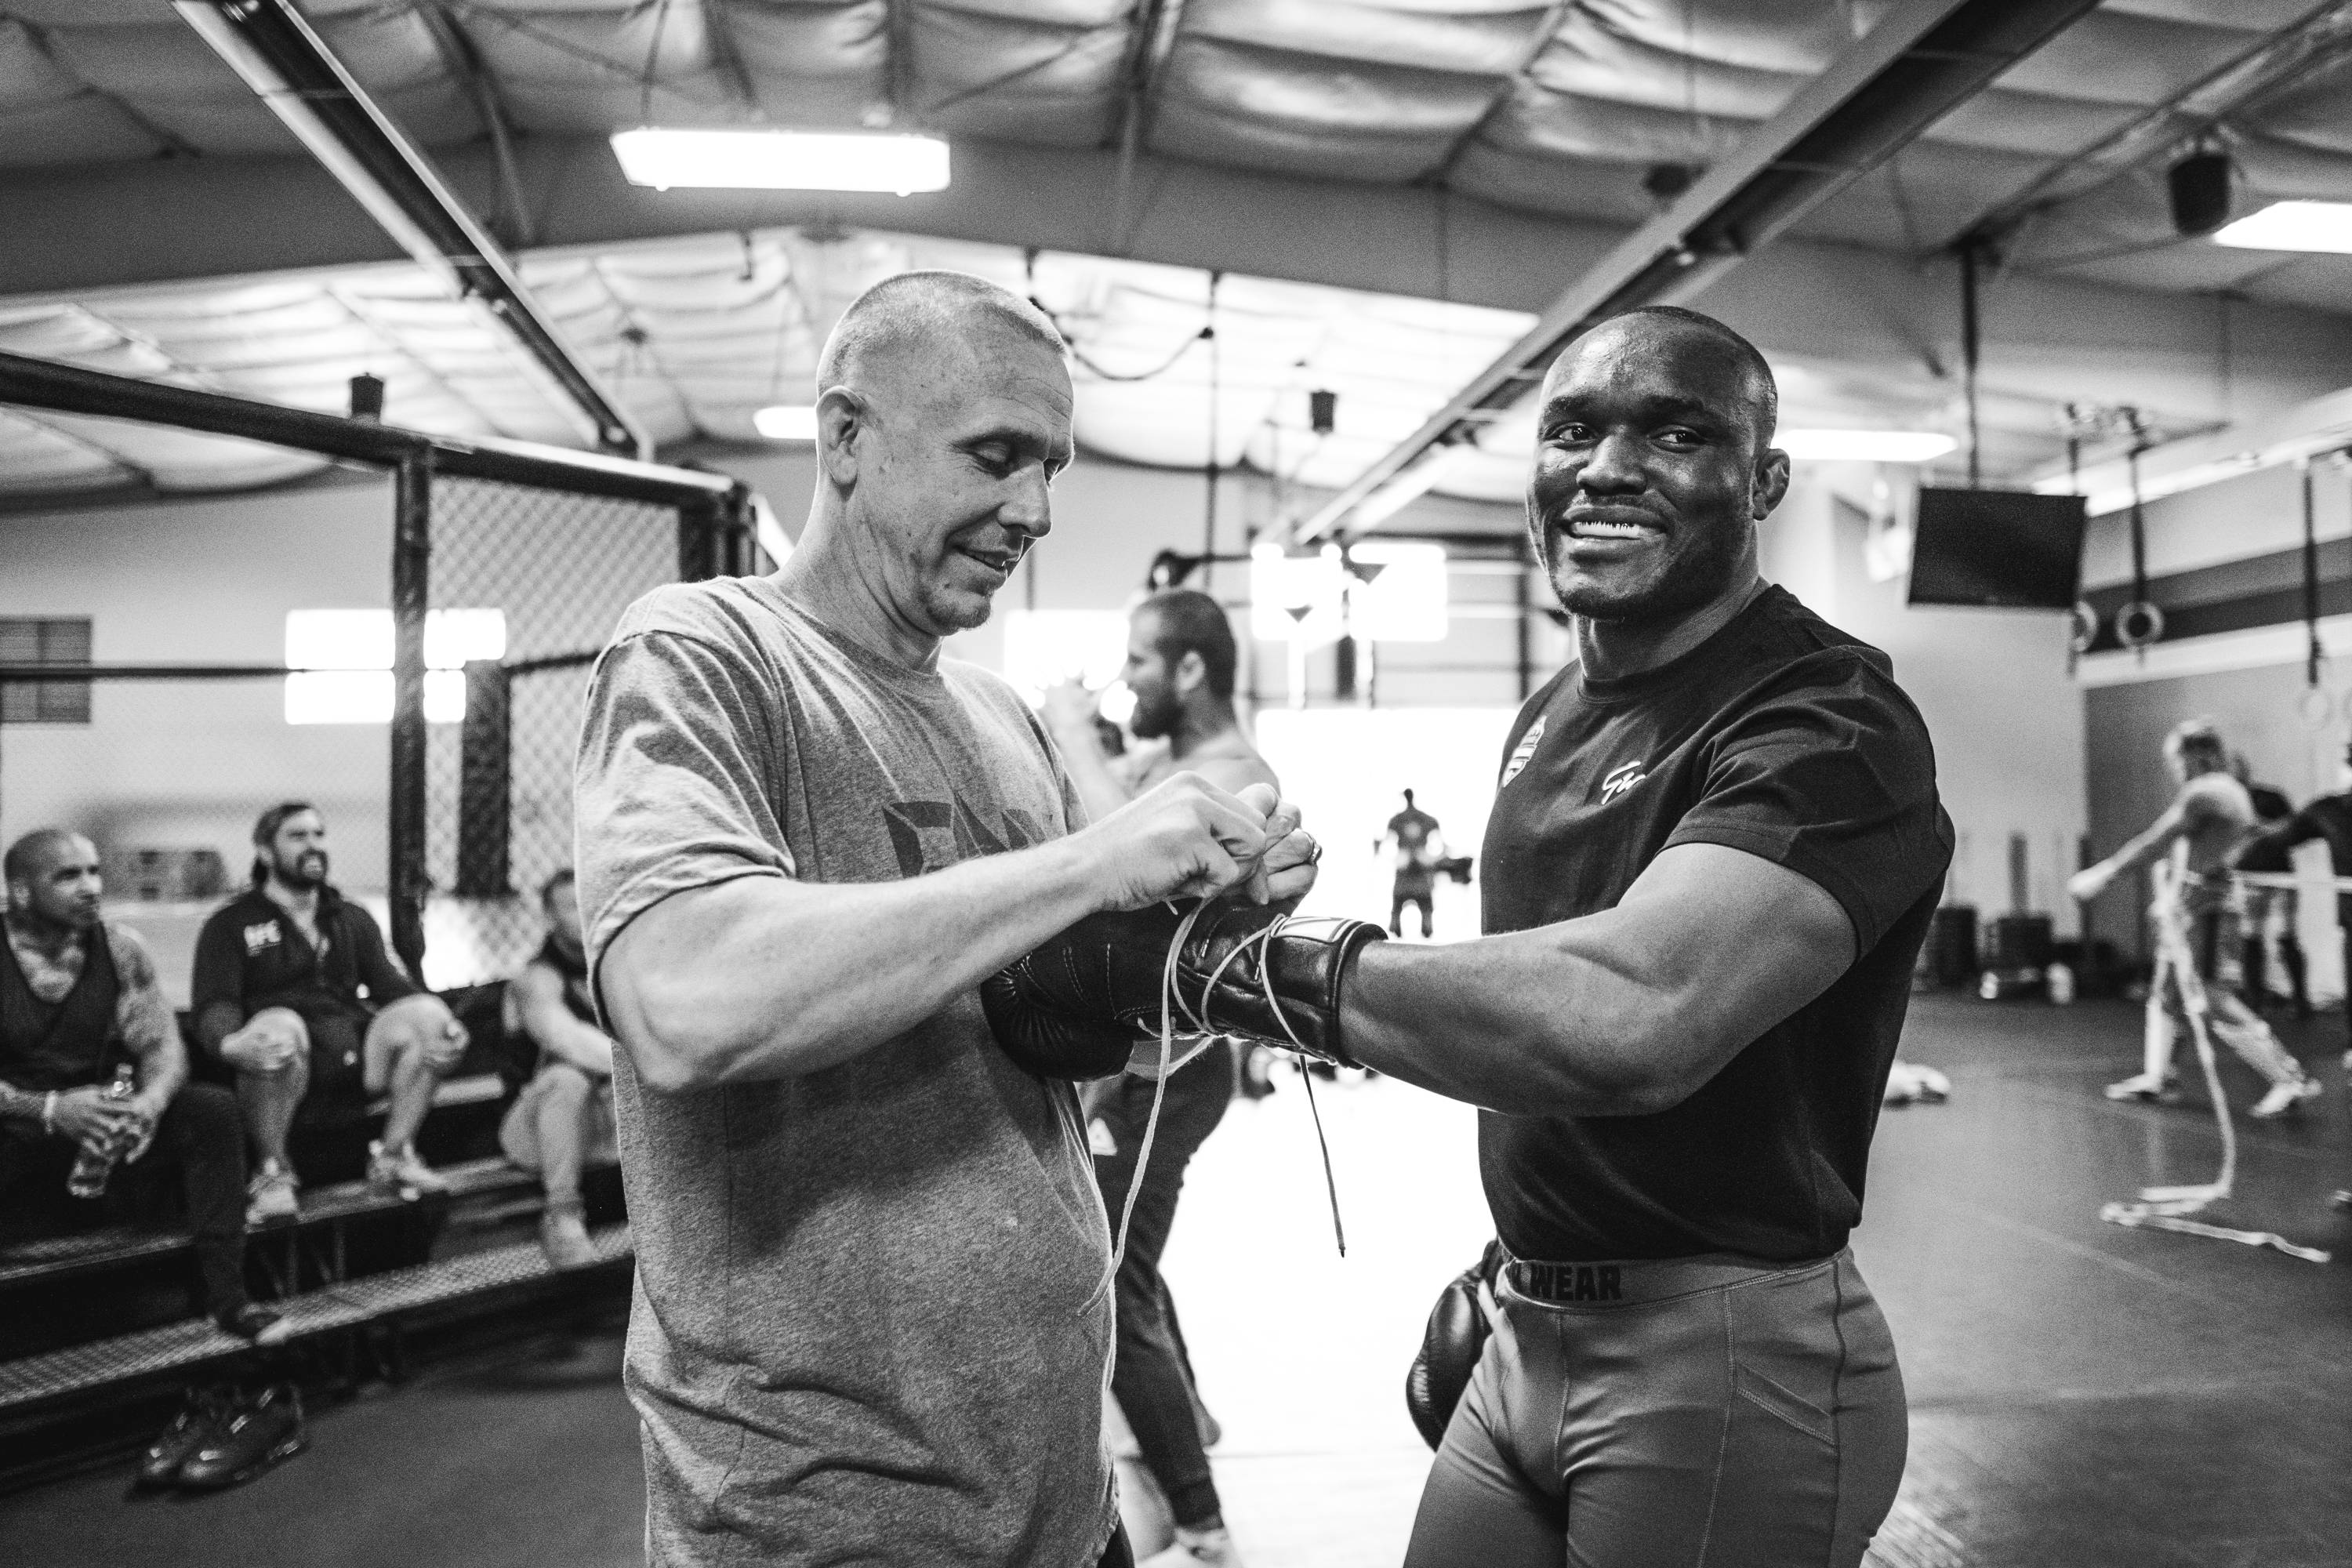 Kamaru Usman, Trevor Wittman, X-Factor, Boxing Gloves, Boxing Equipment, MMA Gloves, Boxing Headgear, Boxing Gear, Hand Wraps, Combat Sports, MMA Gear, Martial Arts Supplies, Muay Thai Gloves, Sparring Gloves, Fight Gloves, MMA Shin Guards, ONX Sports